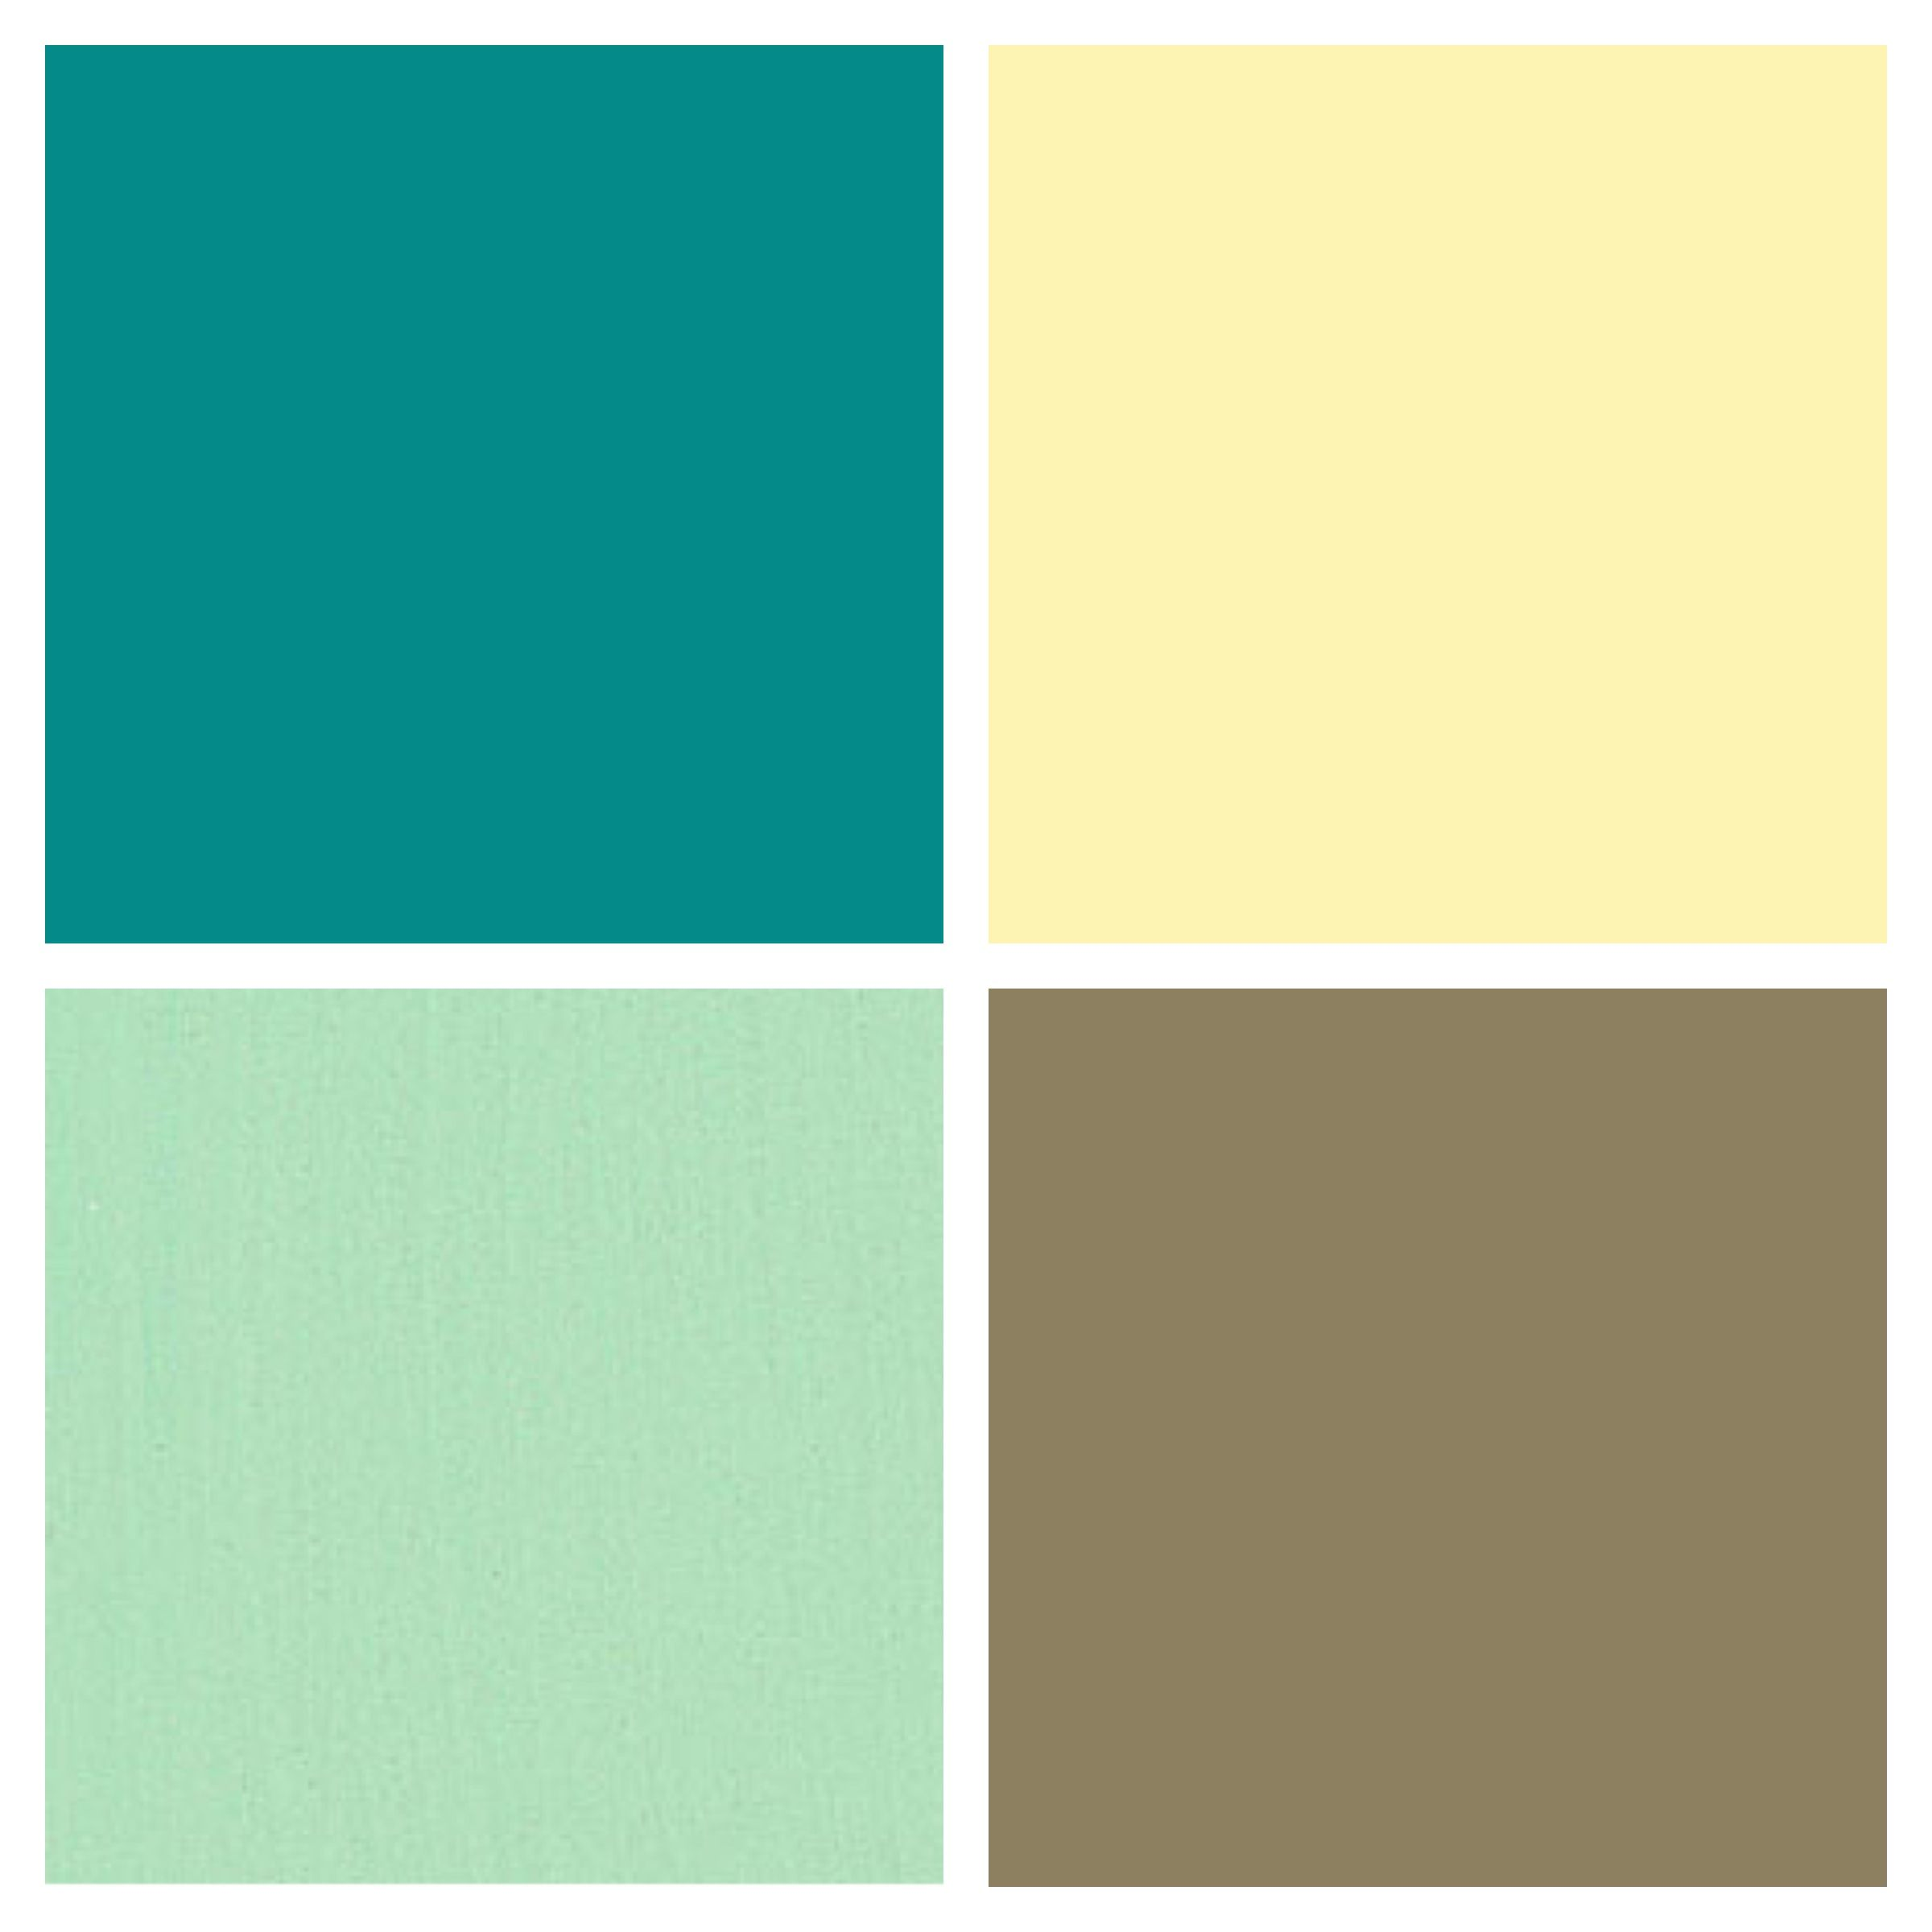 Kitchen color palette- butter / country yellow, mint / seafoam green ...